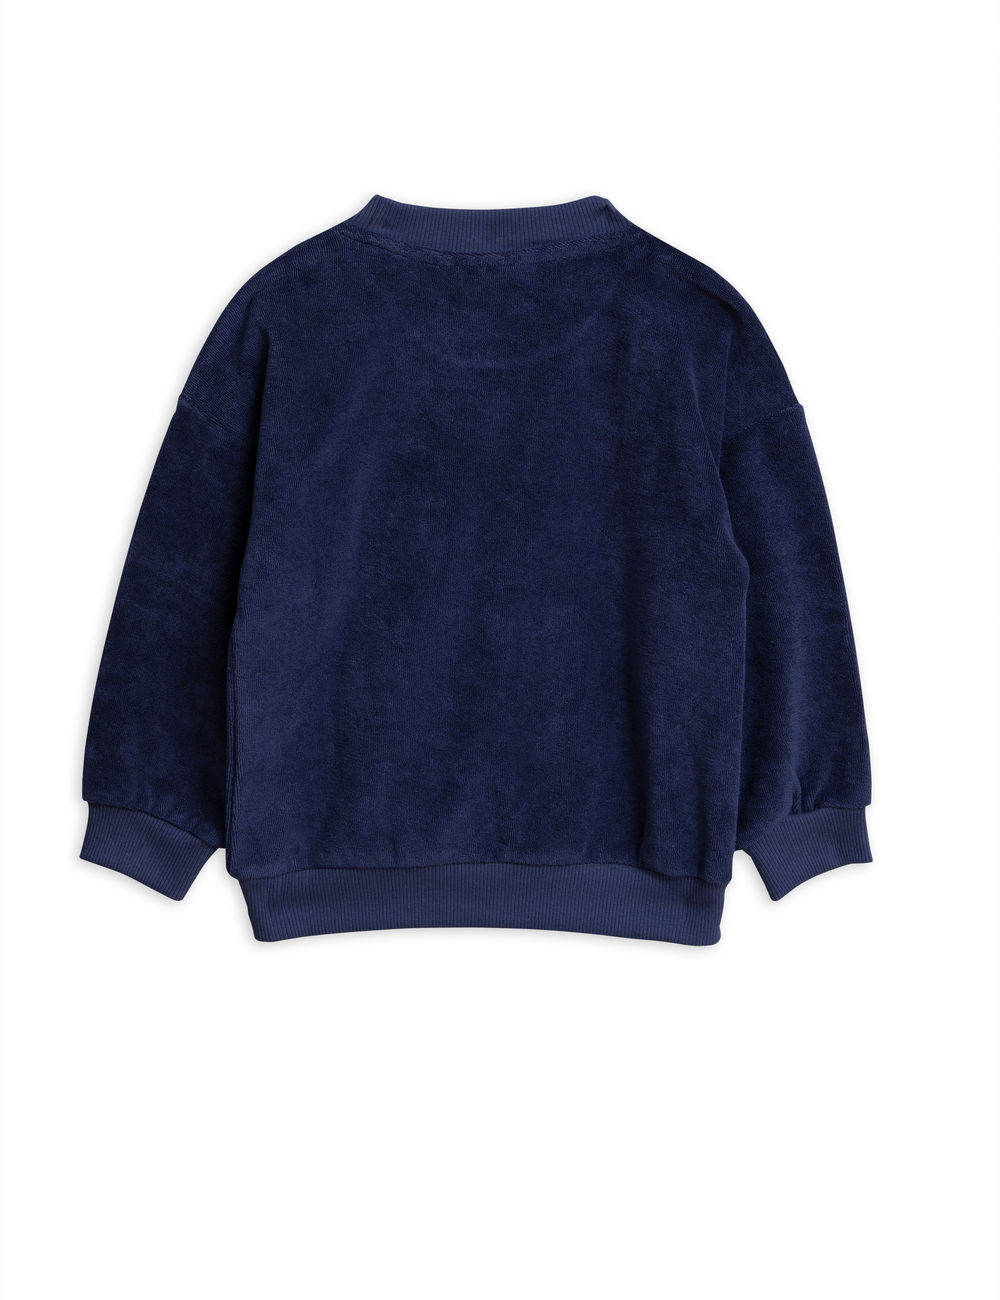 MINI RODINI WHALE TERRY SWEATSHIRT, NAVY